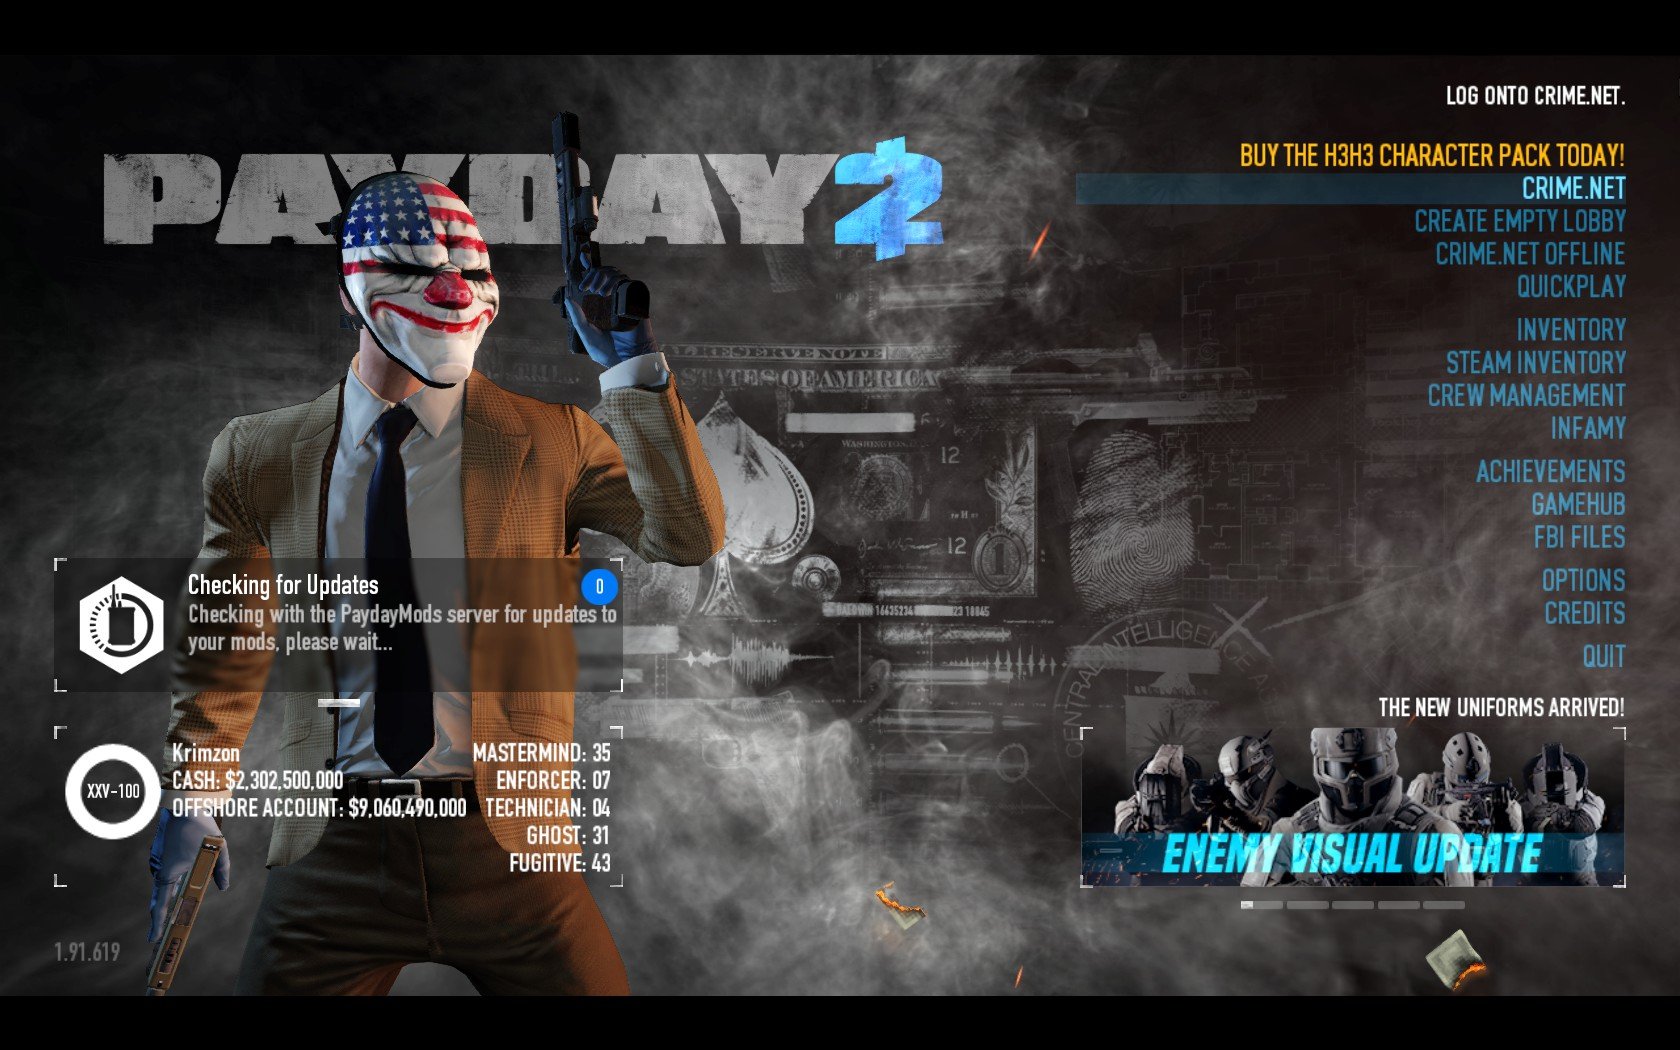 payday 2 offshore account betting lines